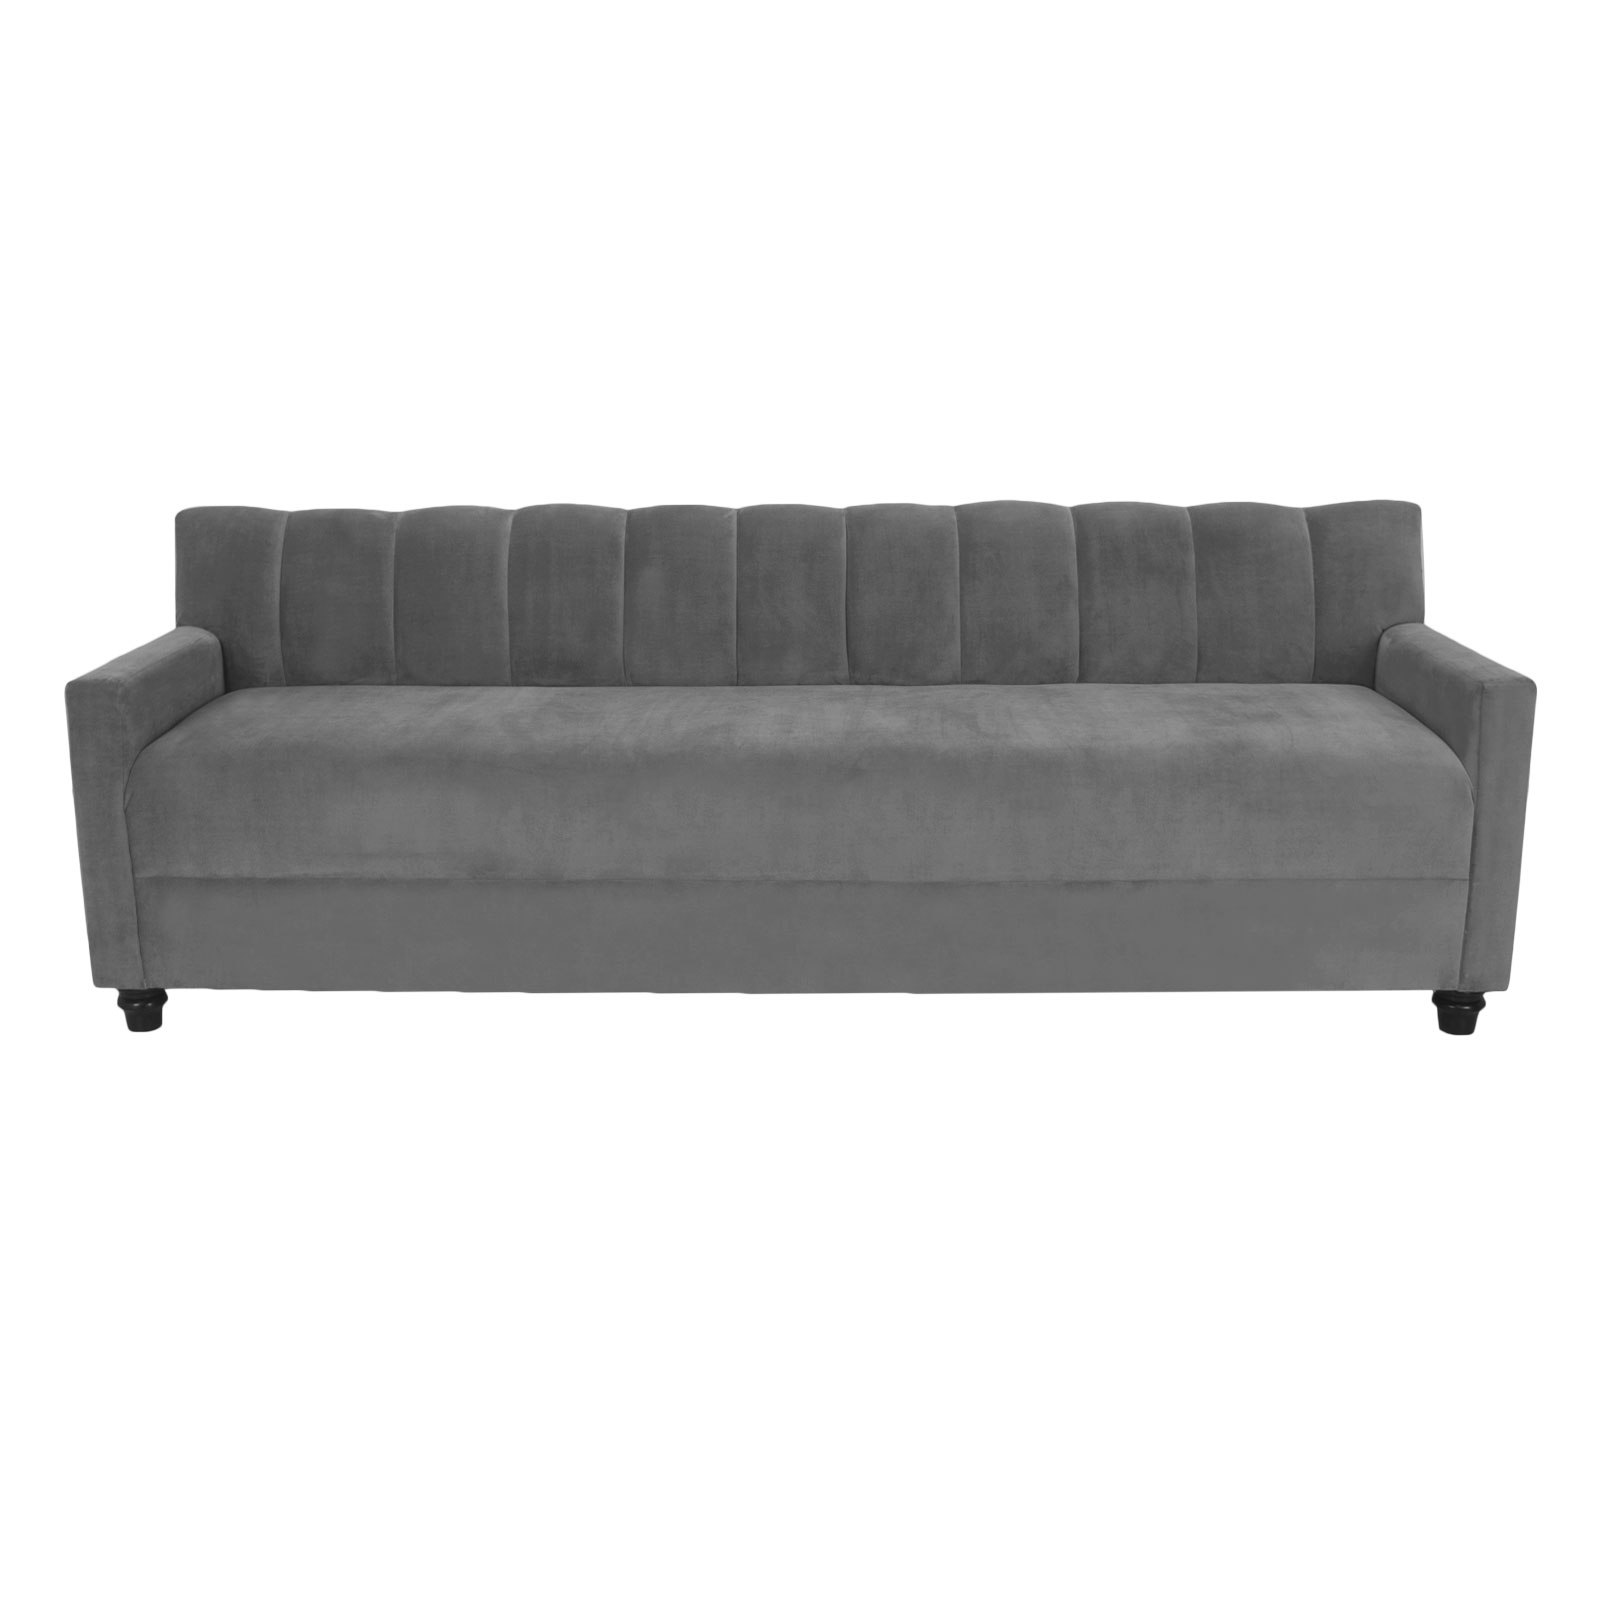 rental sofa best leather sectional for the money modular rentals event furniture delivery